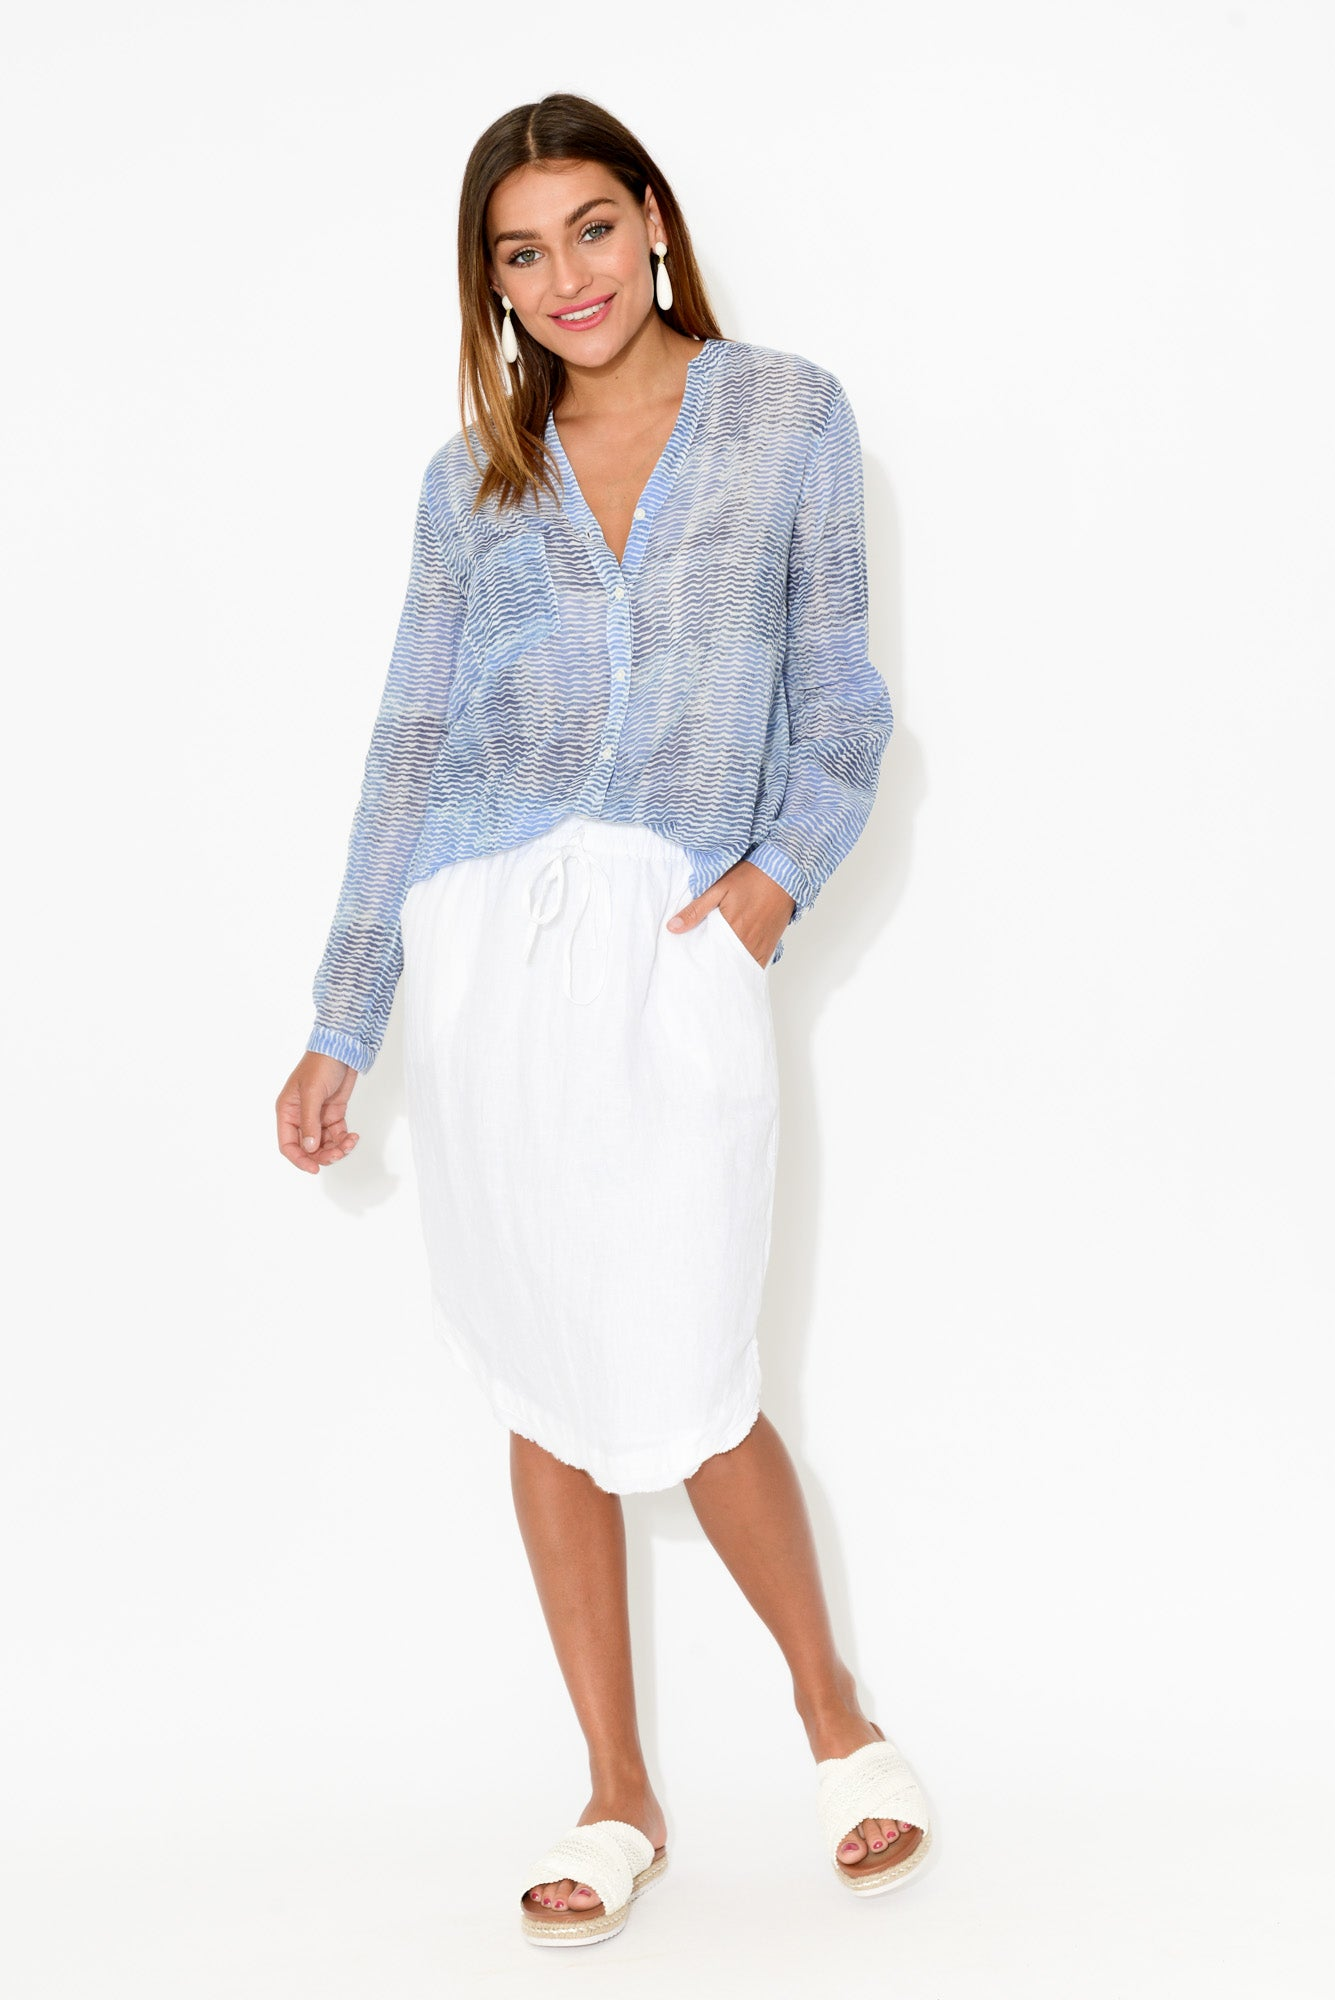 Caprice Blue Waves Cotton Shirt